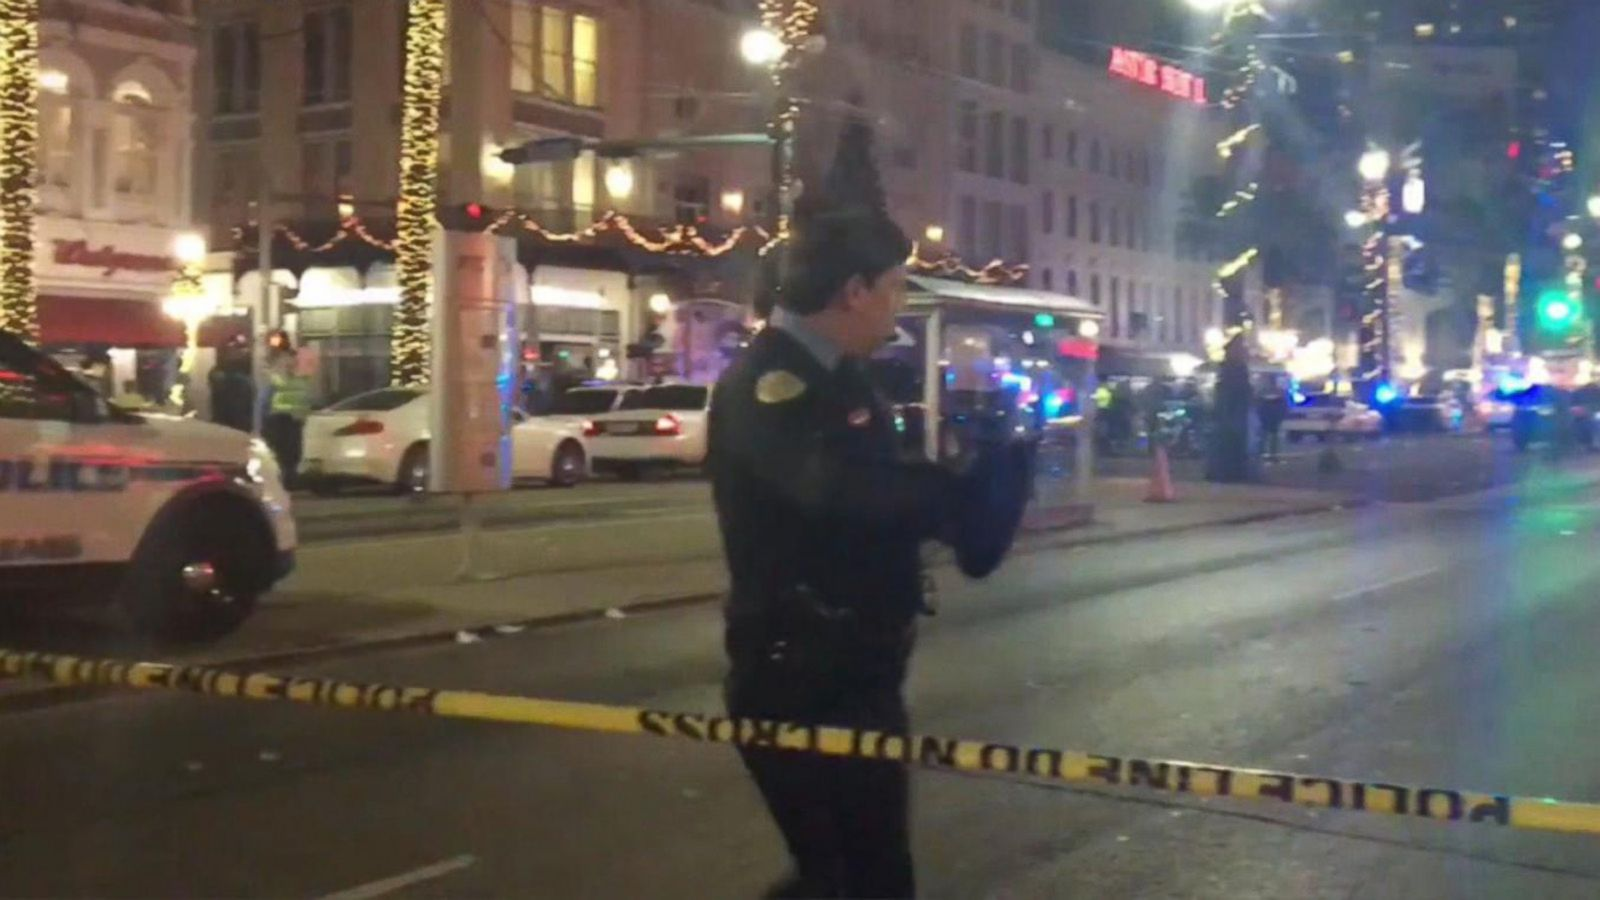 2 arrested in New Orleans shooting that killed 1, wounded 9